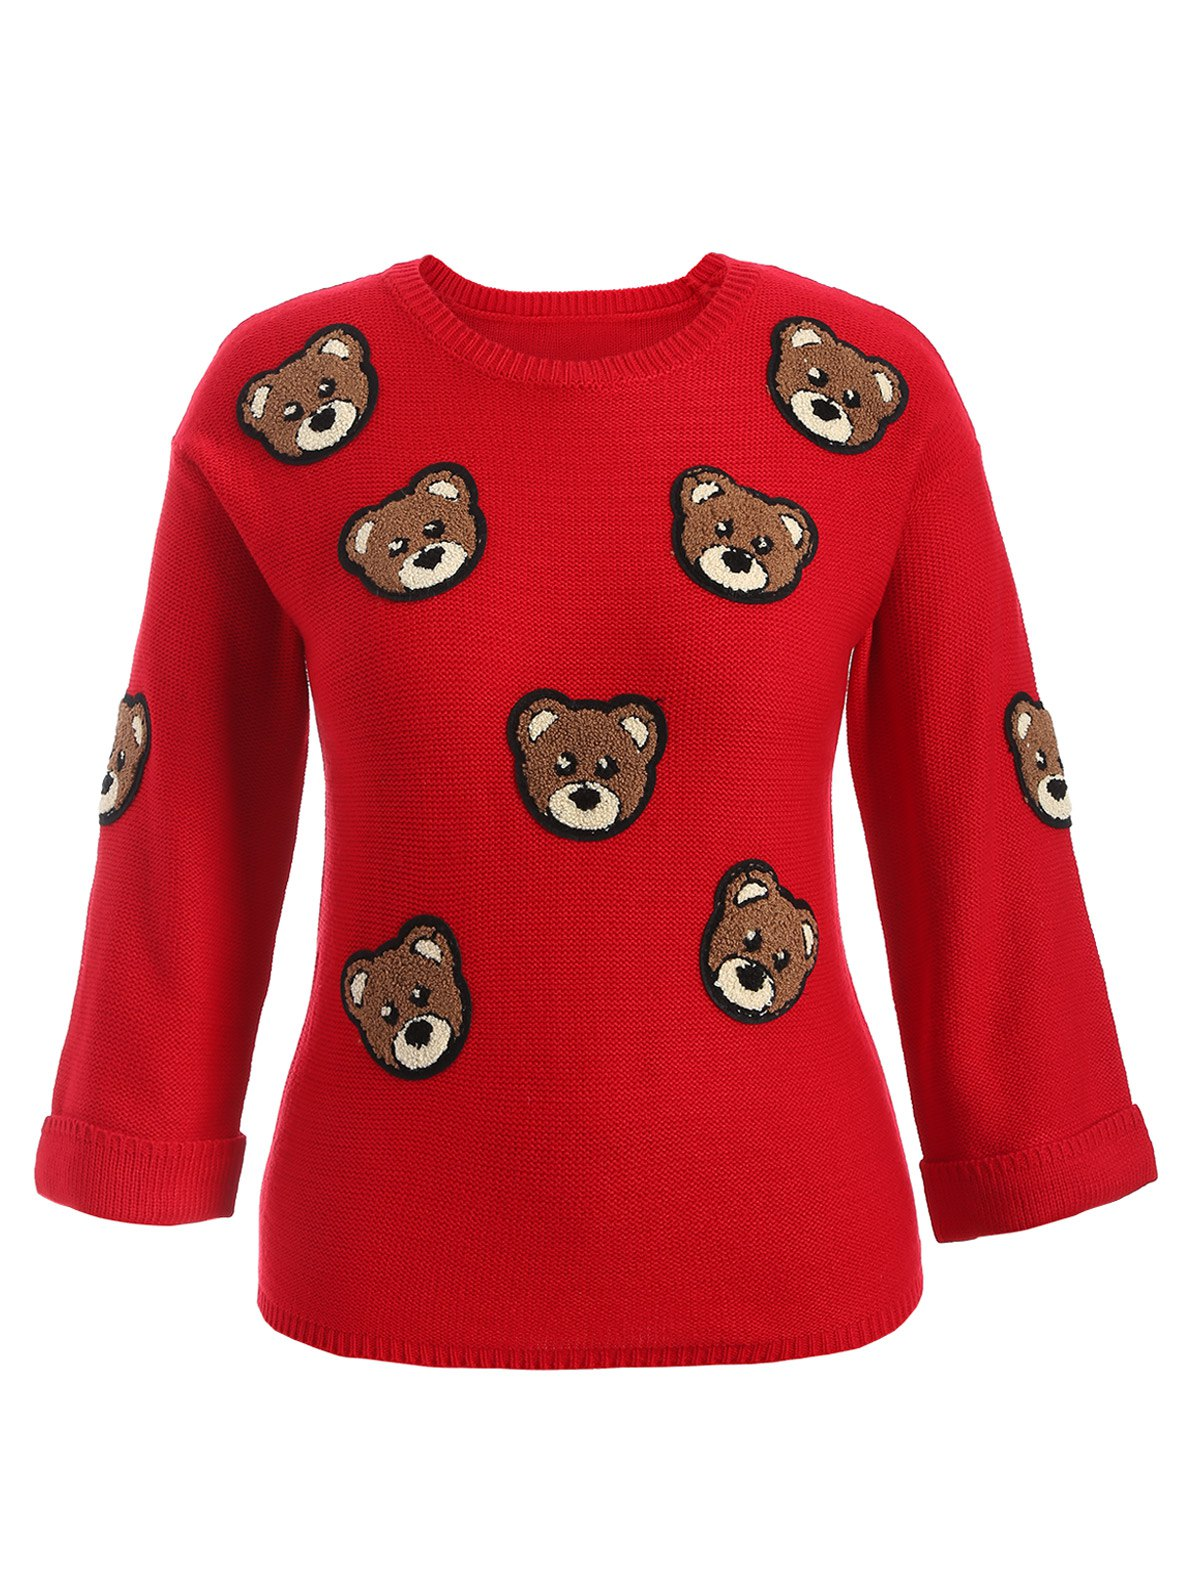 Bear Patched Plus Size Pullover SweaterWOMEN<br><br>Size: 4XL; Color: RED; Type: Pullovers; Material: Cotton,Polyester; Sleeve Length: Full; Collar: Crew Neck; Style: Fashion; Season: Fall,Spring; Pattern Type: Animal; Weight: 0.350kg; Package Contents: 1 x Sweater;